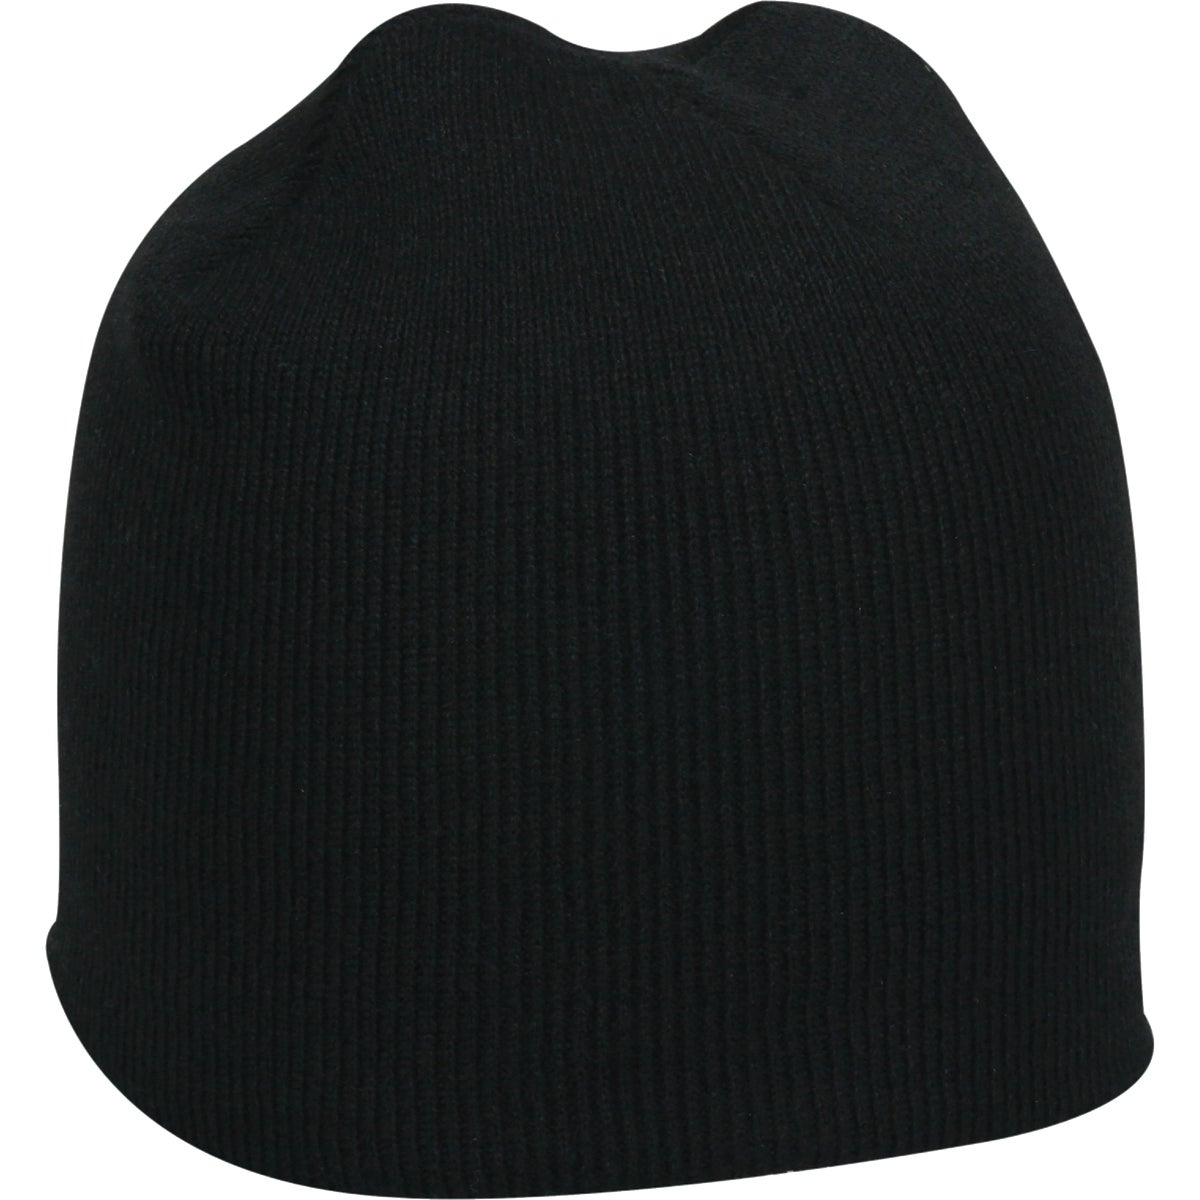 BLK THINSULATE BEANIE